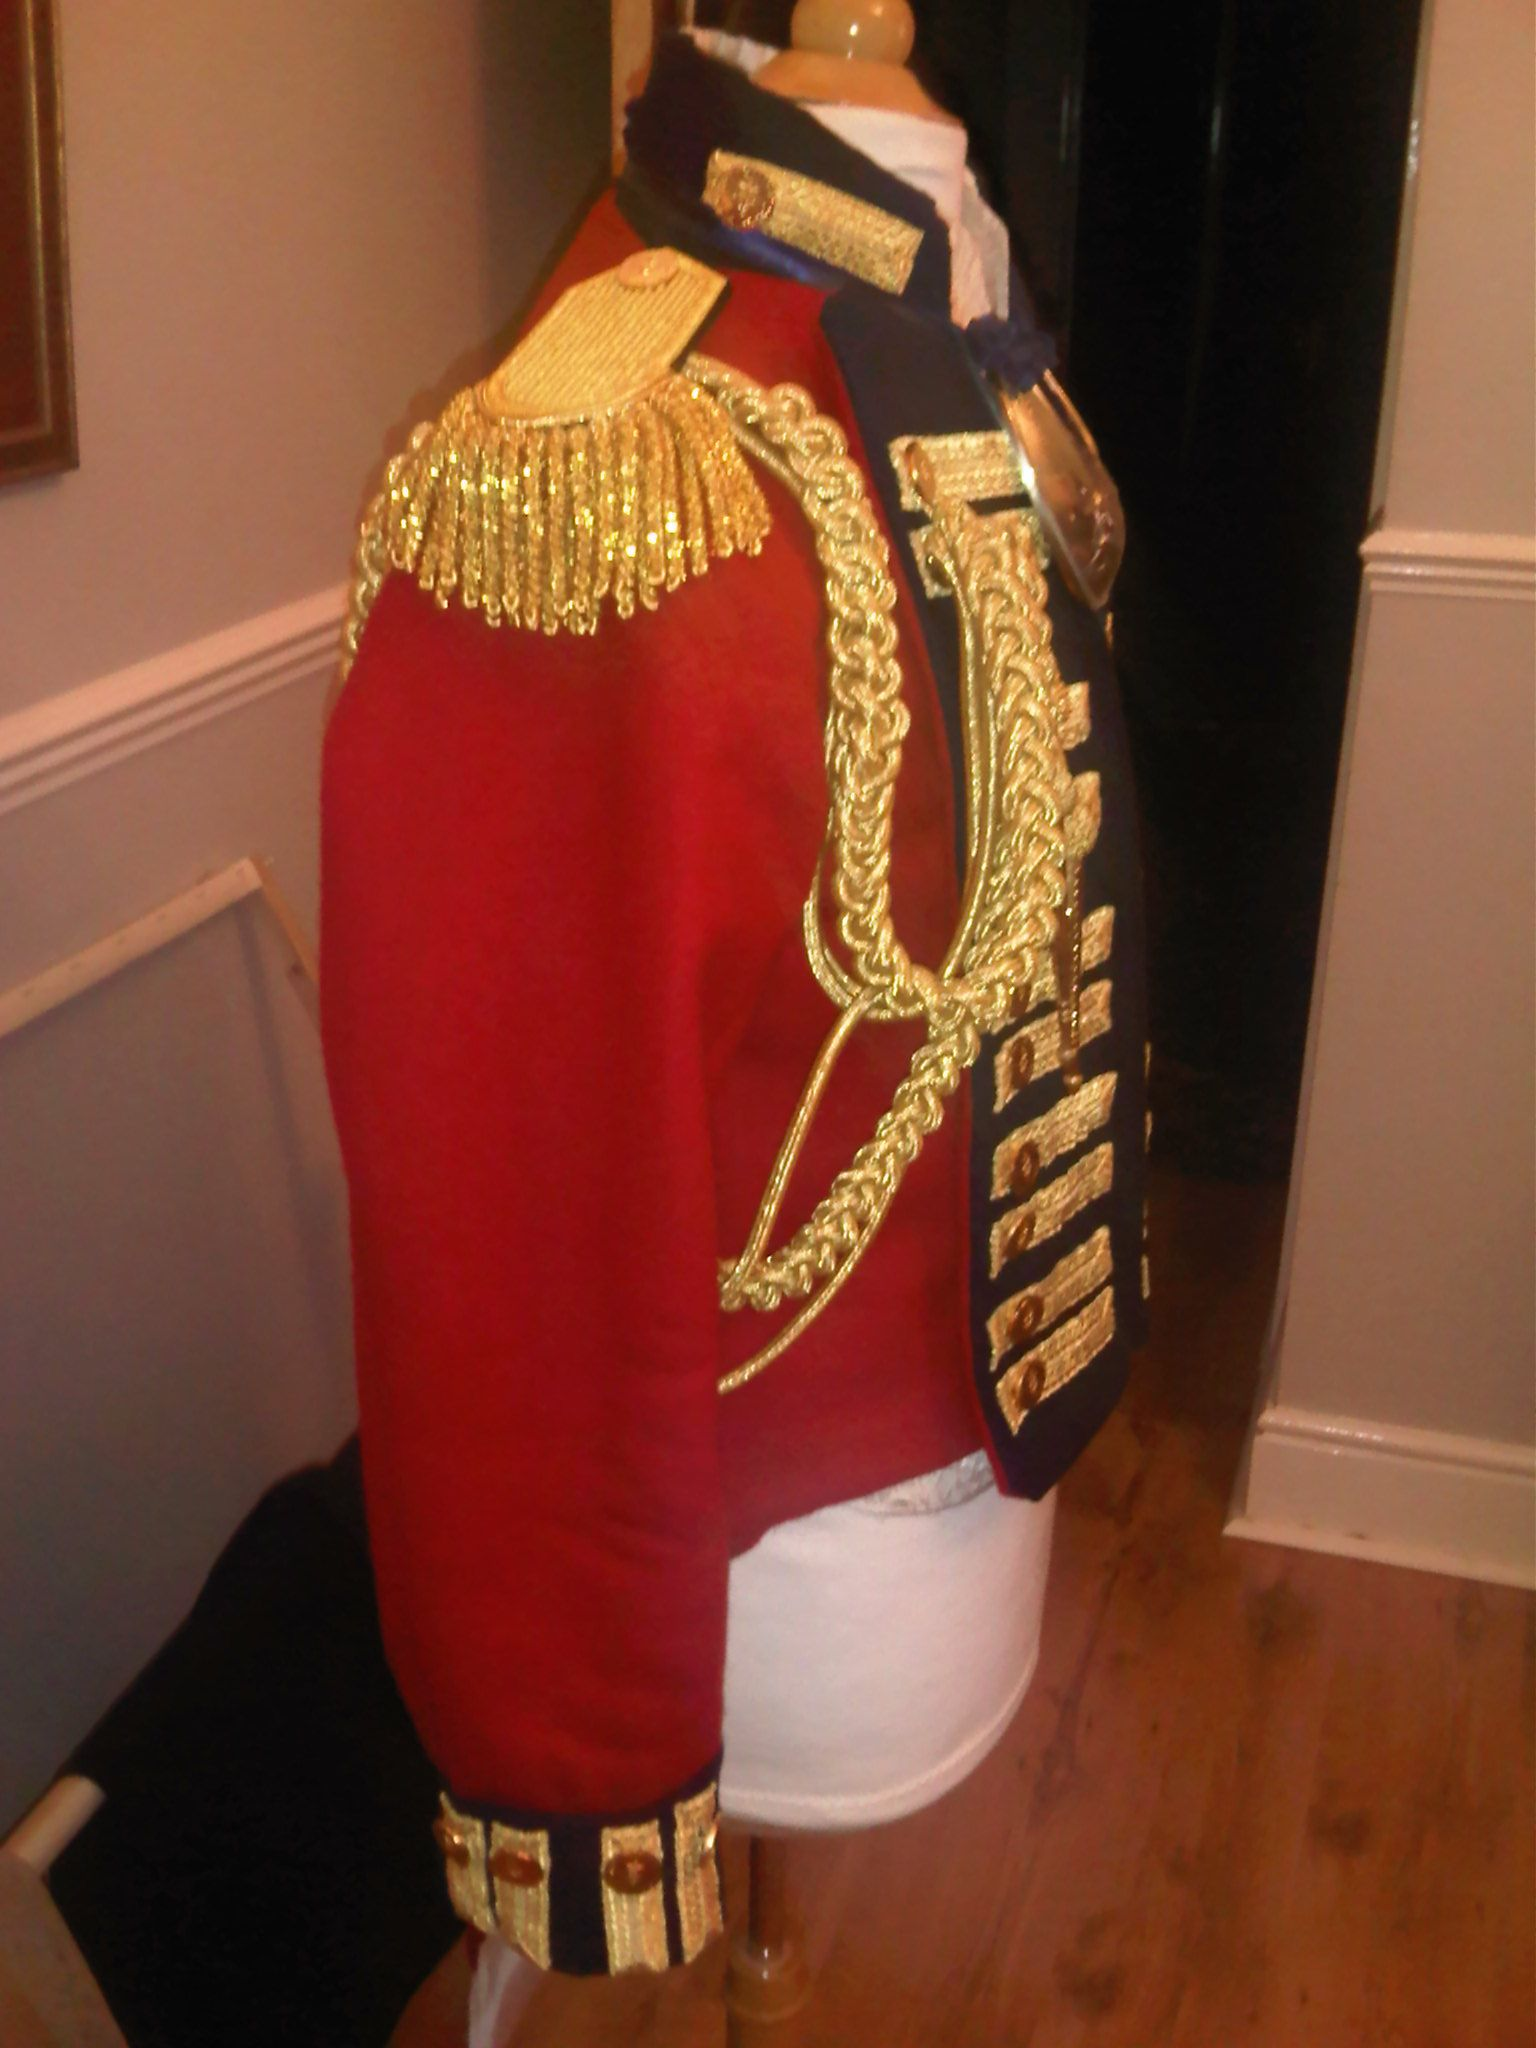 British officer's uniform, from the Napoleonic wars. Presumably the sort of get-up John would have worn as a staff officer. I can totally see how those epaulettes would deflect a spent musket ball.